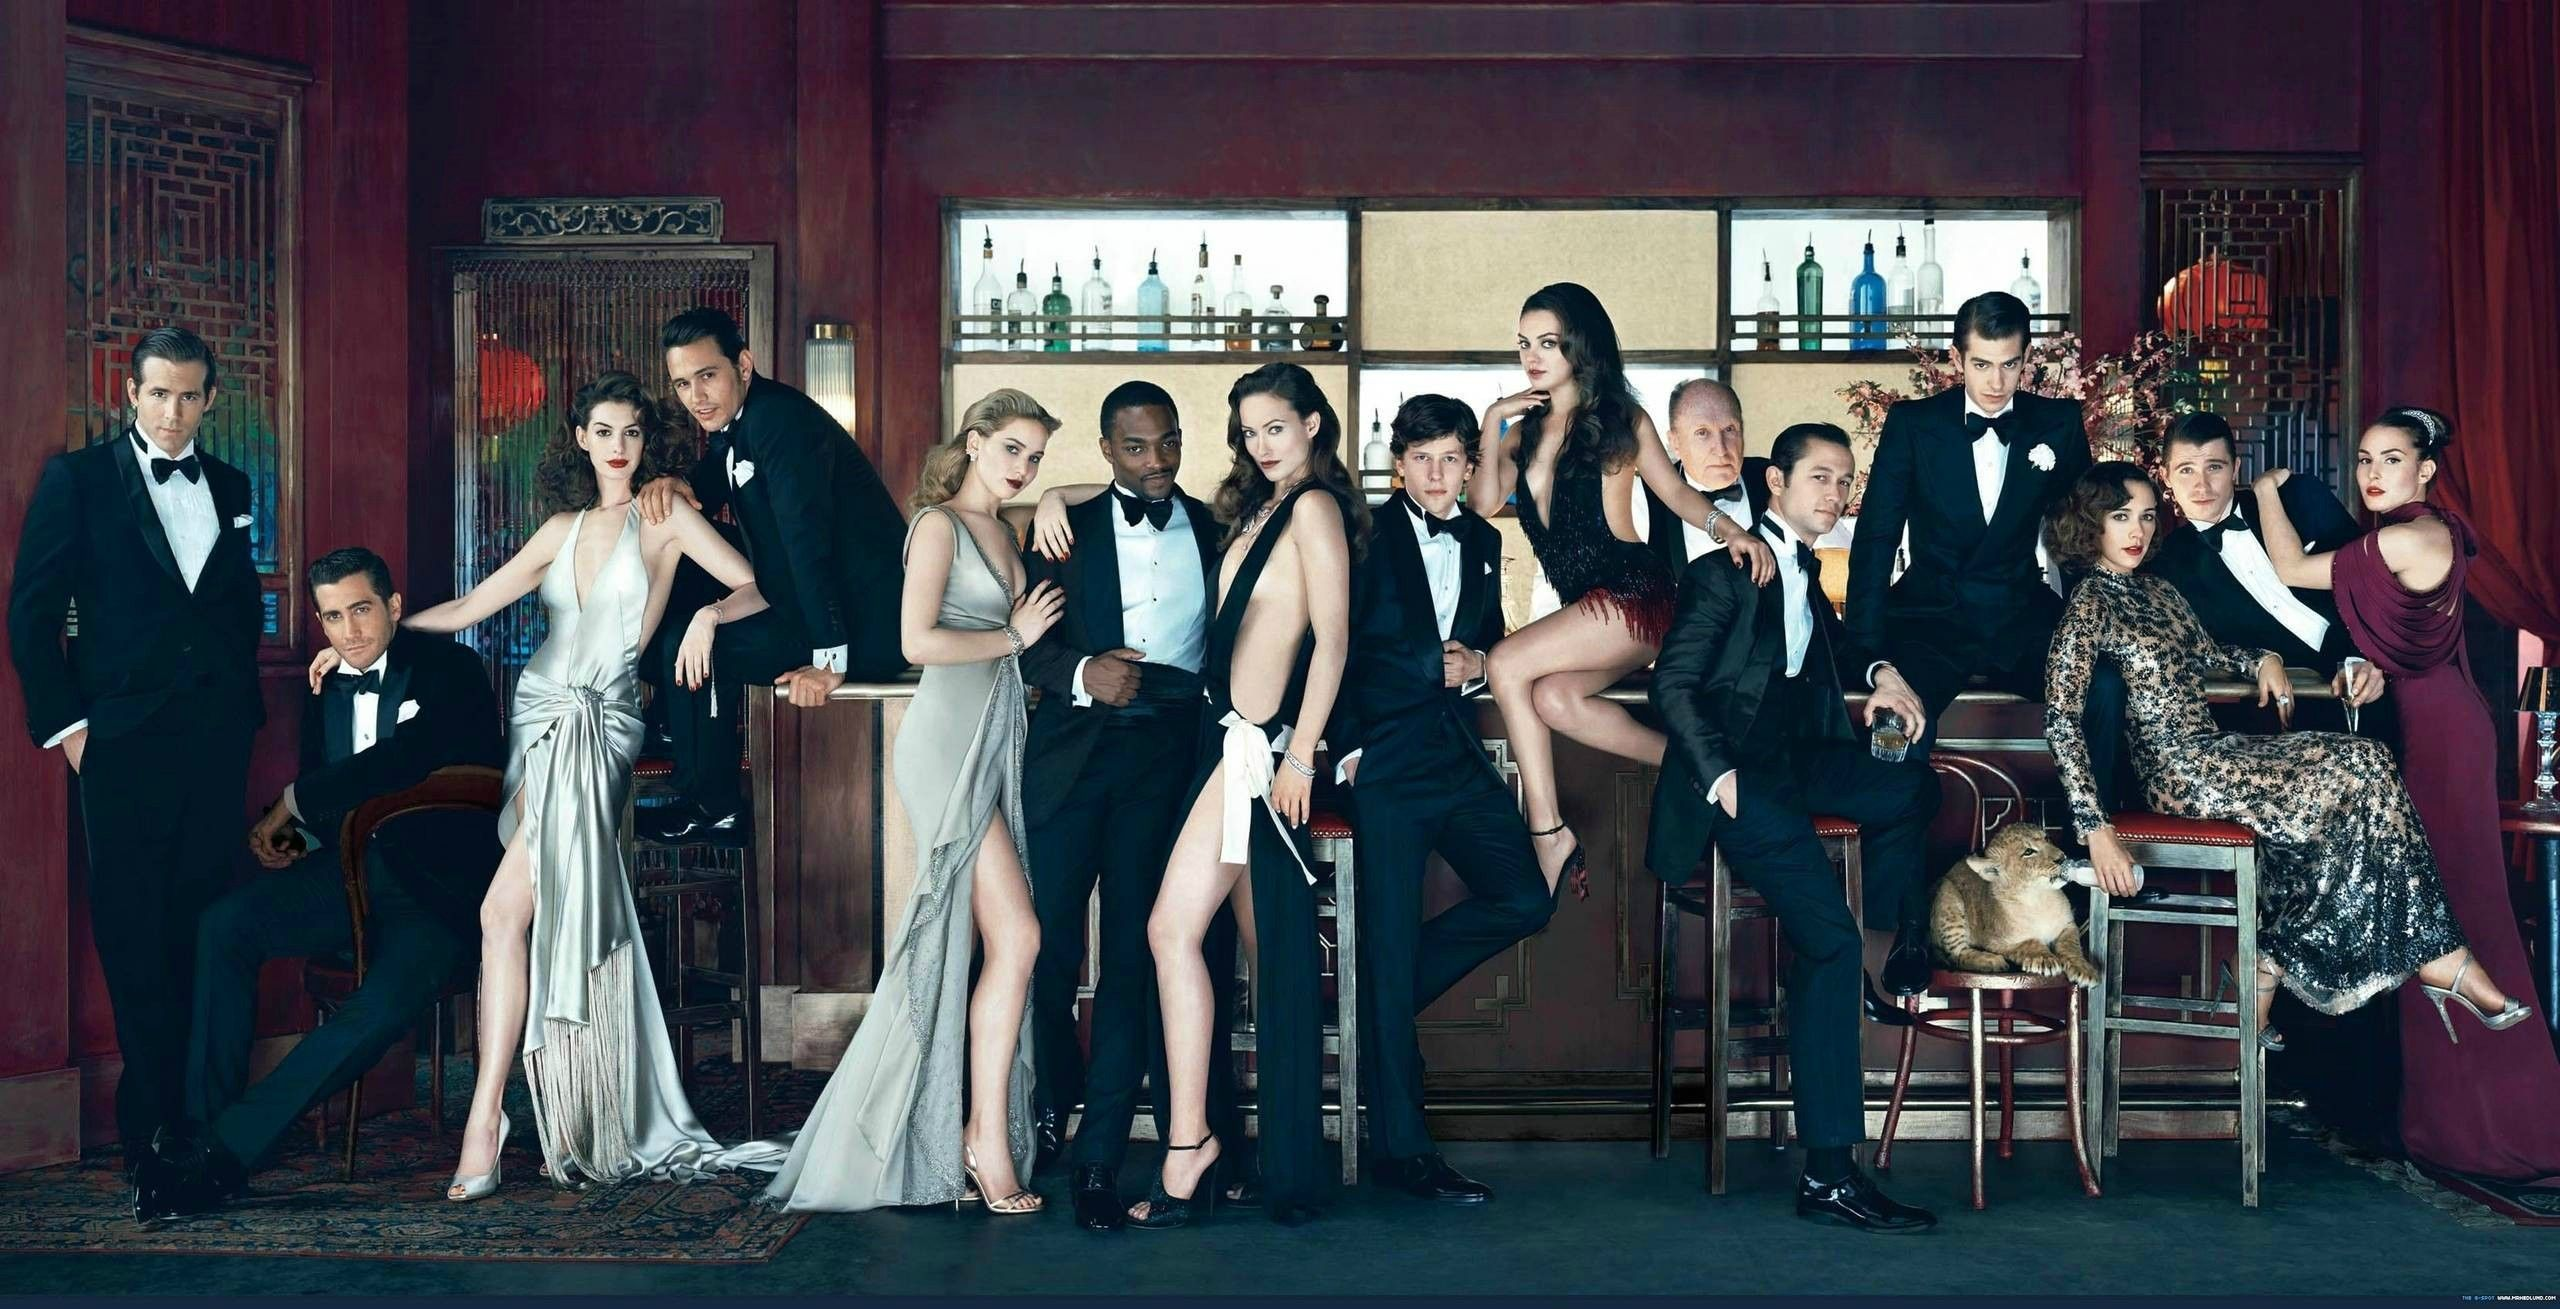 Hottest picture on the internet. Reynolds, Gyllenhall, Hathaway, Franco, Lawrence, Mackie, Wilde, Eisenberg, Kunis, Duvall, JGL, Garfield, R. Jones, Hedlund, Rapace